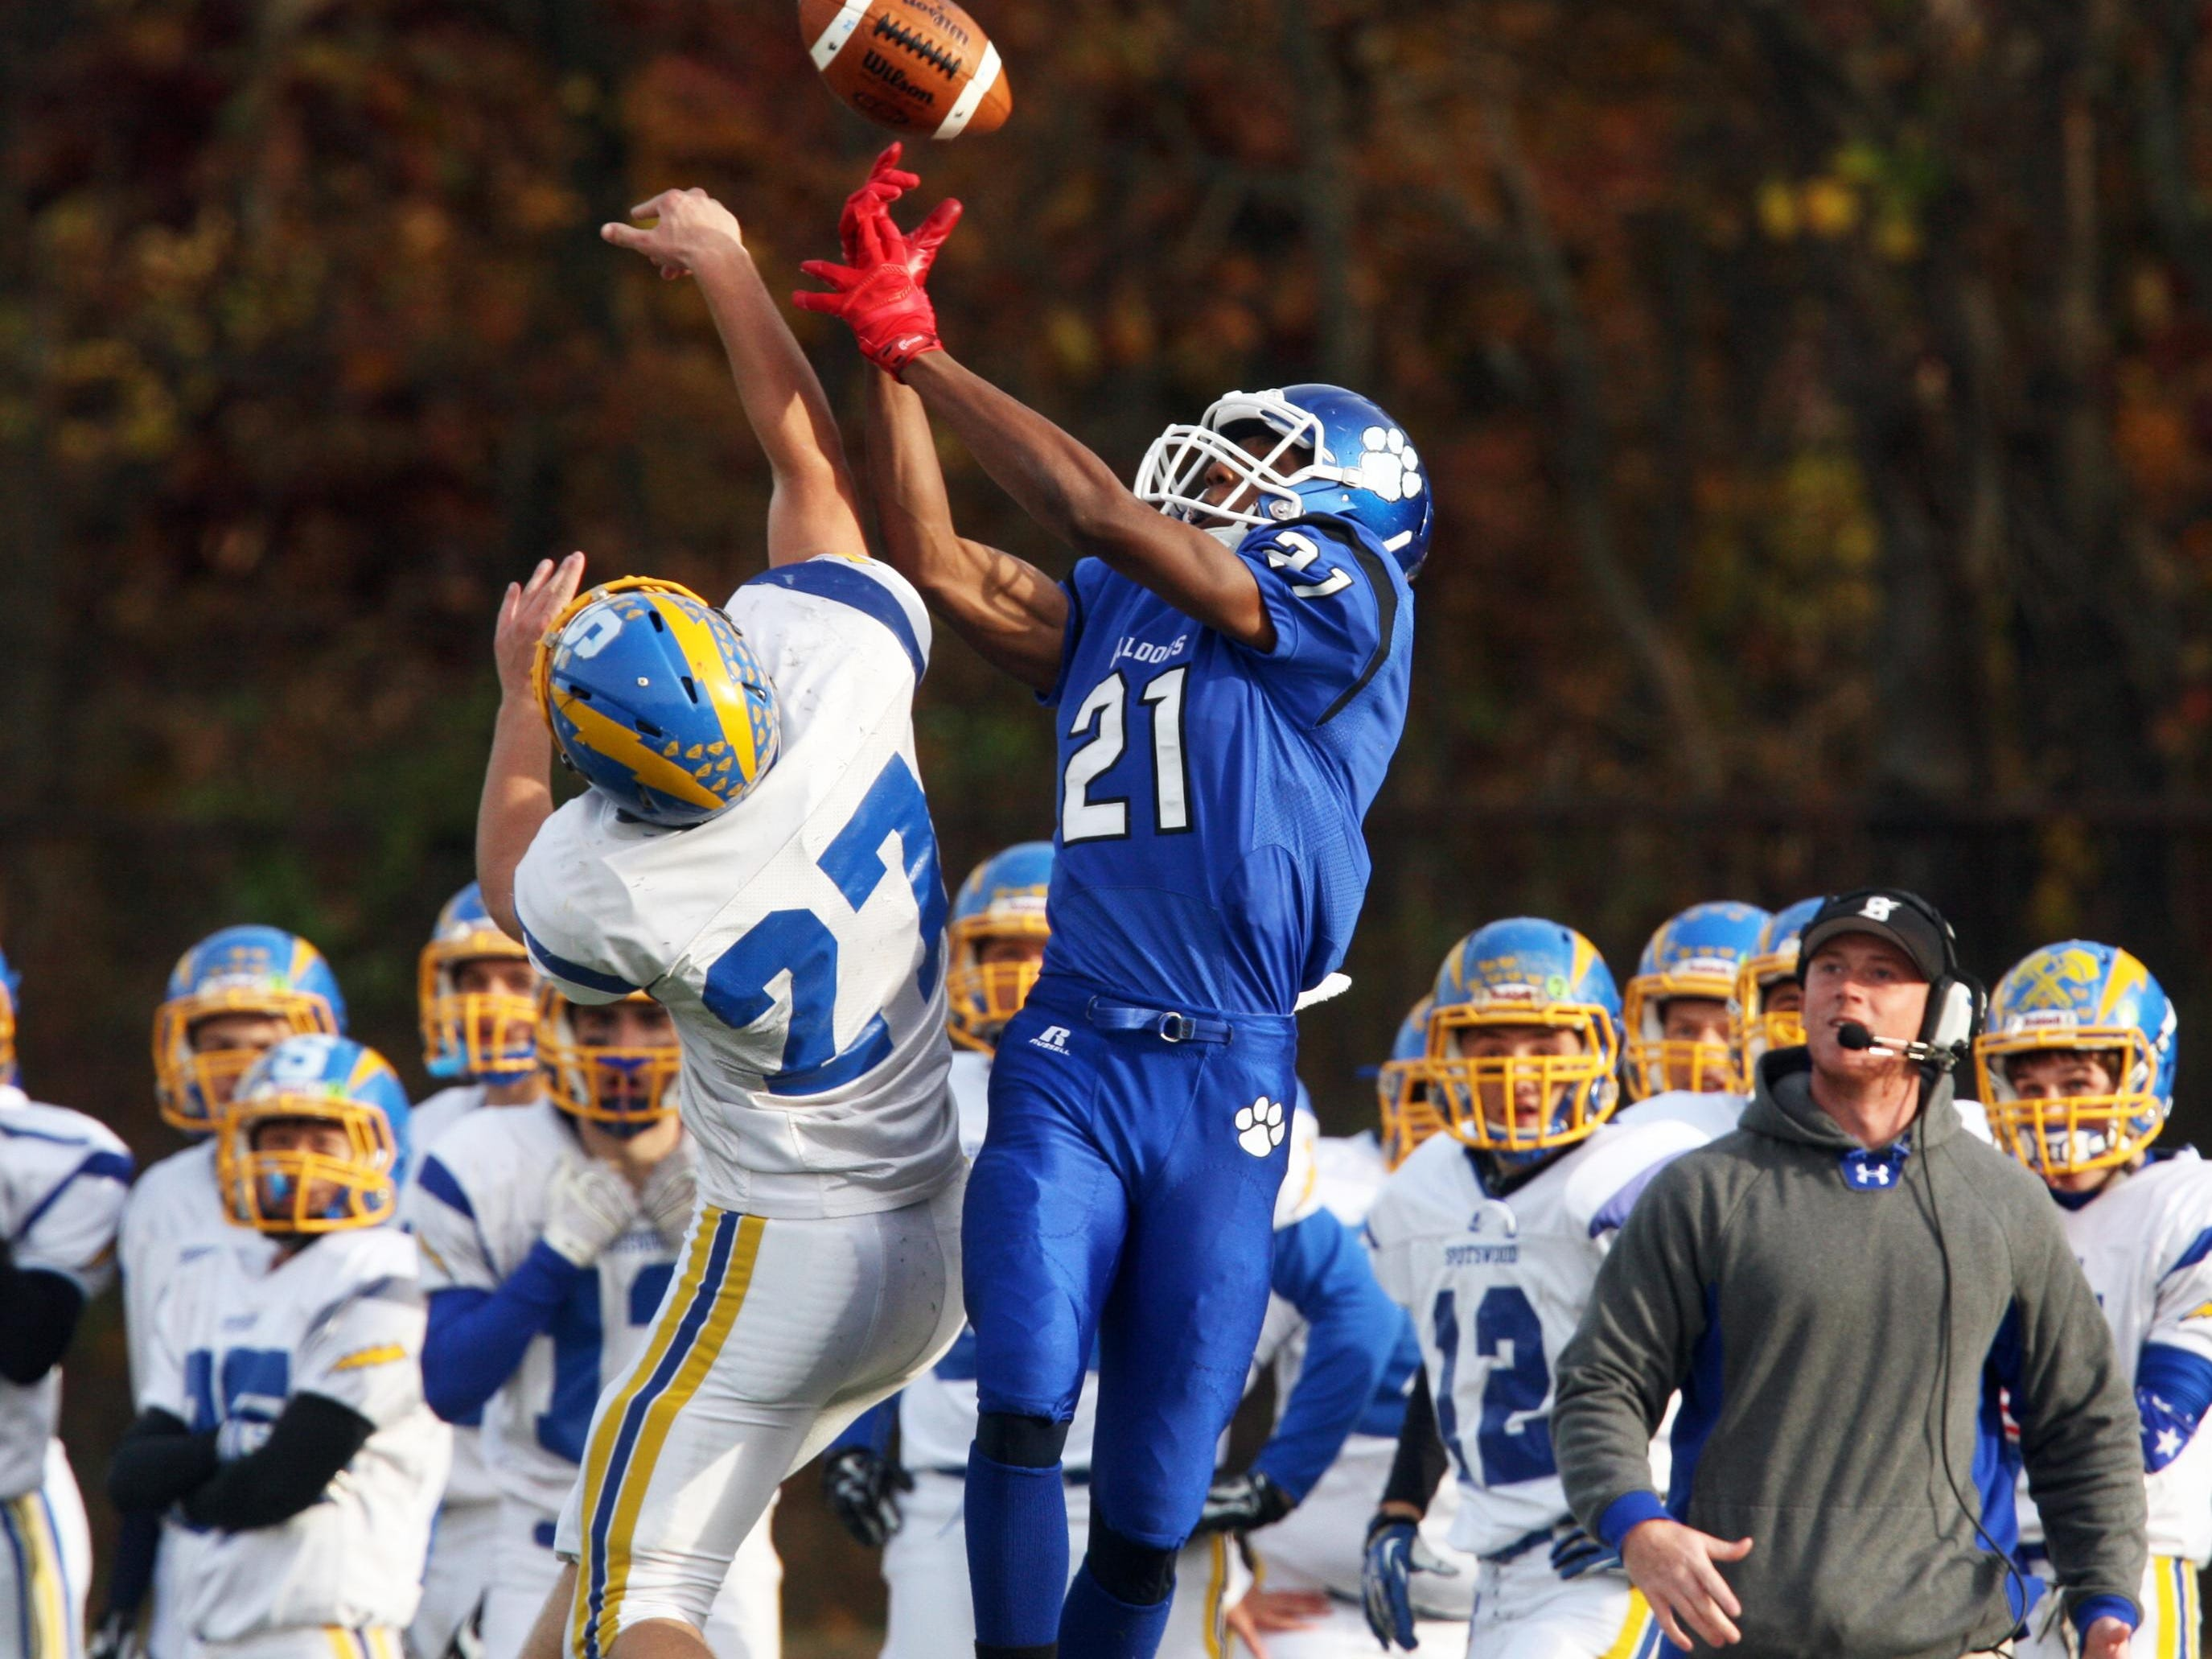 Spotswood at Metuchen varsity football game held at Metuchen High School.Spotswood's # 27 (left)- Ryan Long tries to break up the pass intended for Metuchen's # 21 (right)- Evan Collier.On Saturday November 8, 2014Photo: Mark R. Sullivan/Staff Photographer